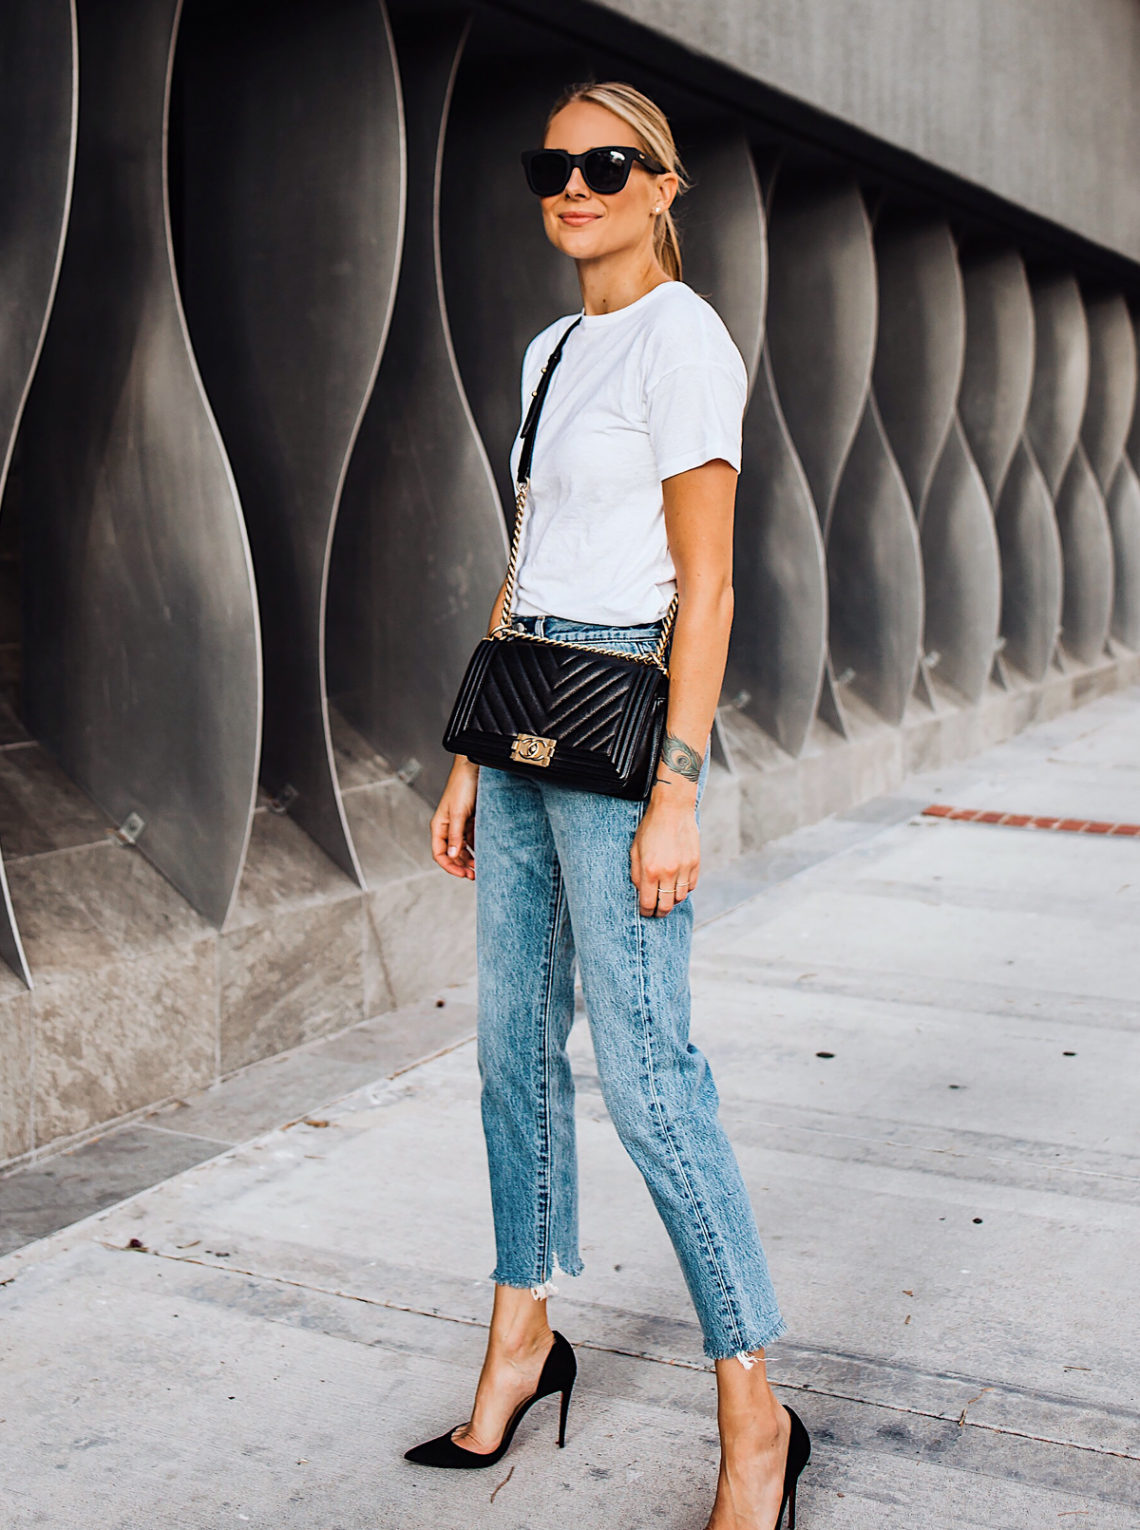 Blonde Woman Wearing Fashion Jackson White Tshirt Levis Wedgie Jeans Chanel Black Boy Bag Christian Louboutin Black Pumps Fashion Jackson San Diego Fashion Blogger Street Style